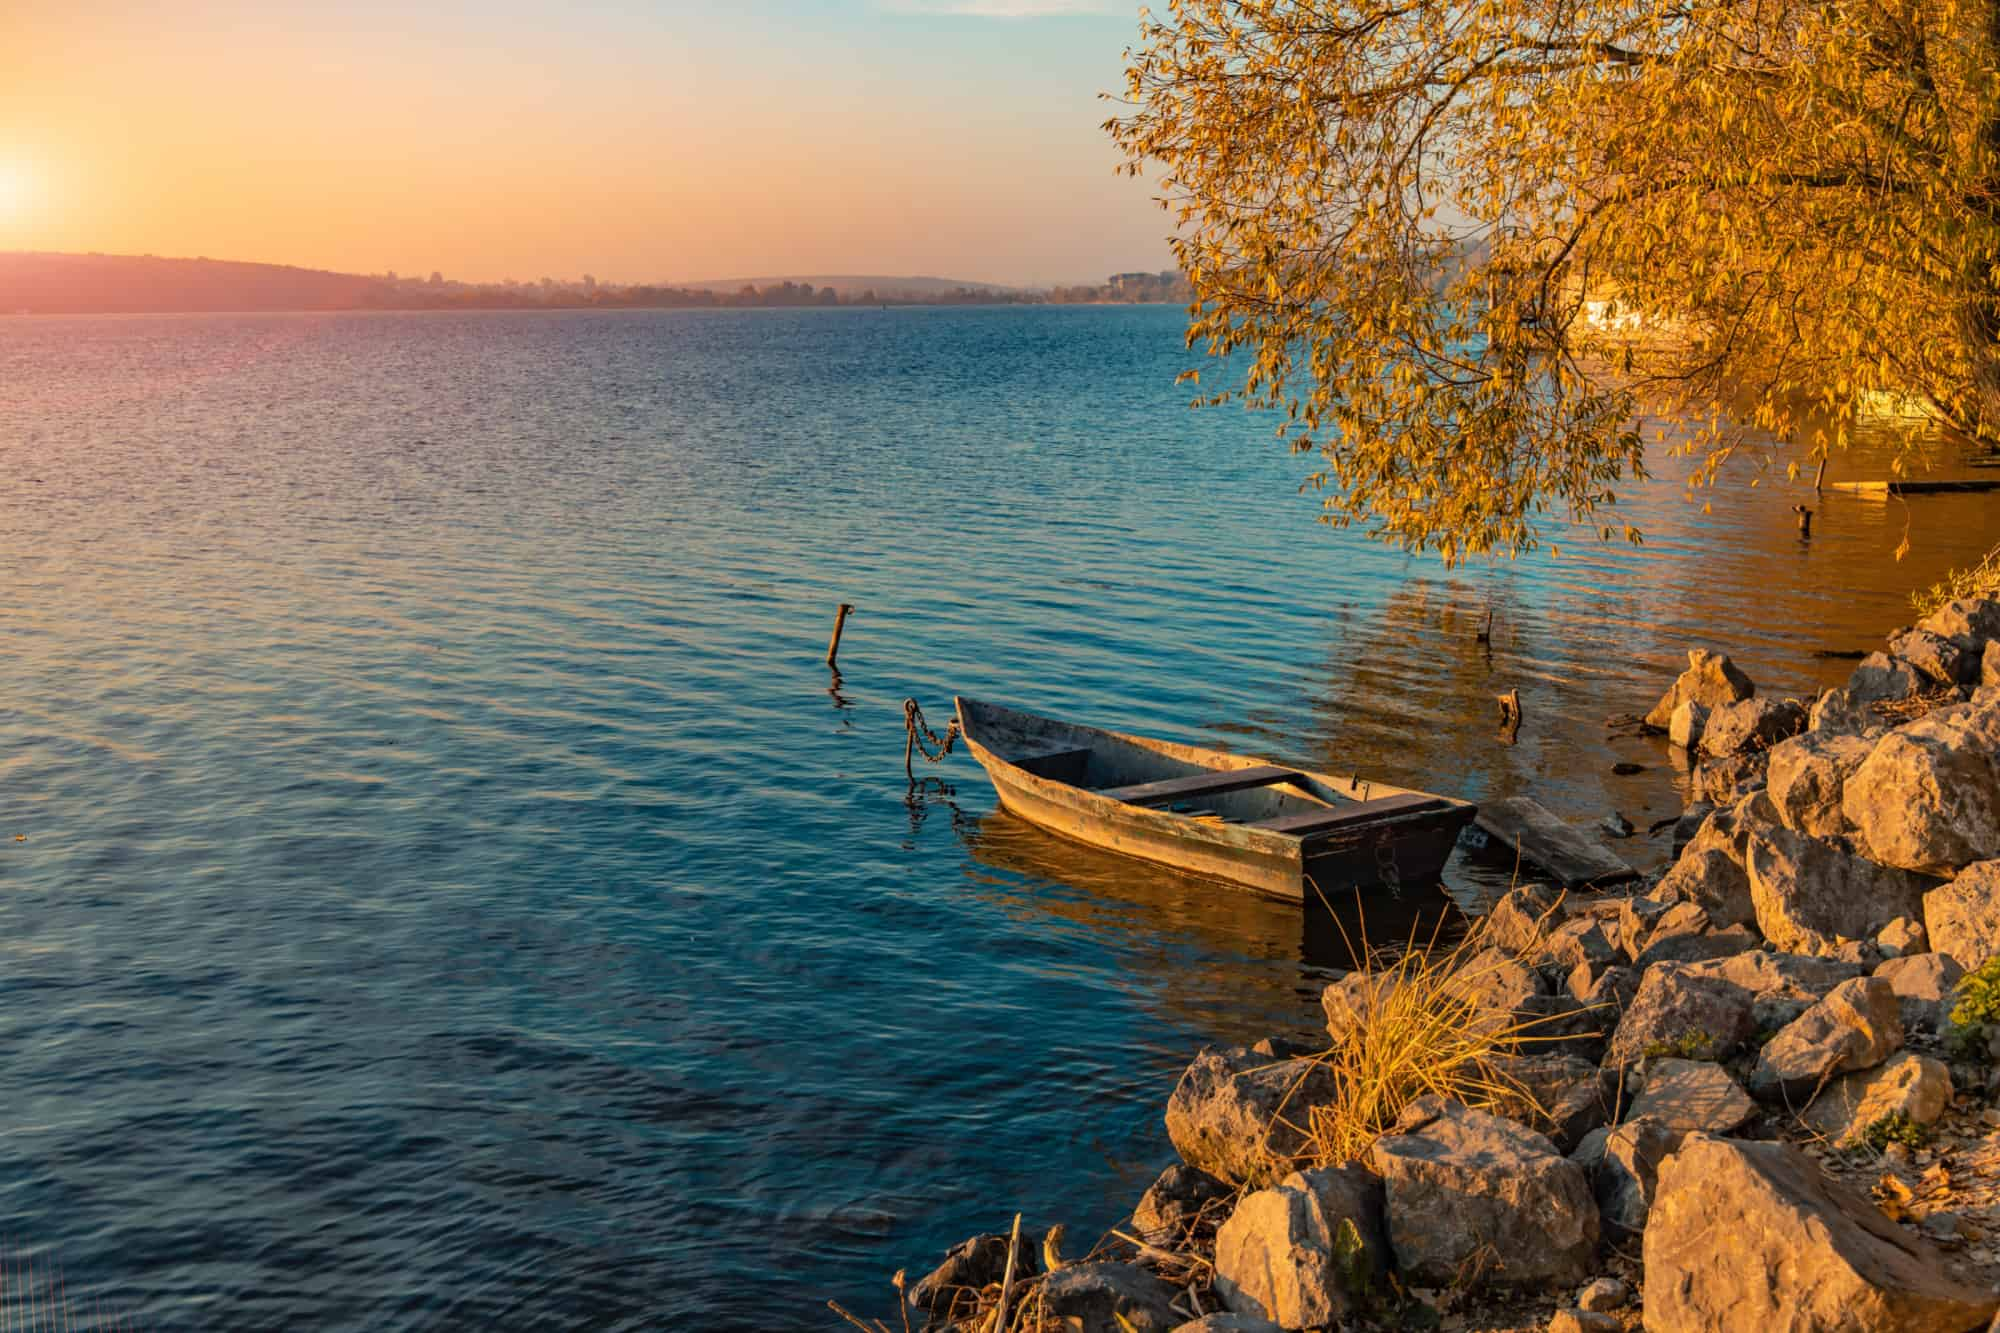 Wooden boat tied to the rocky edge of a lake.